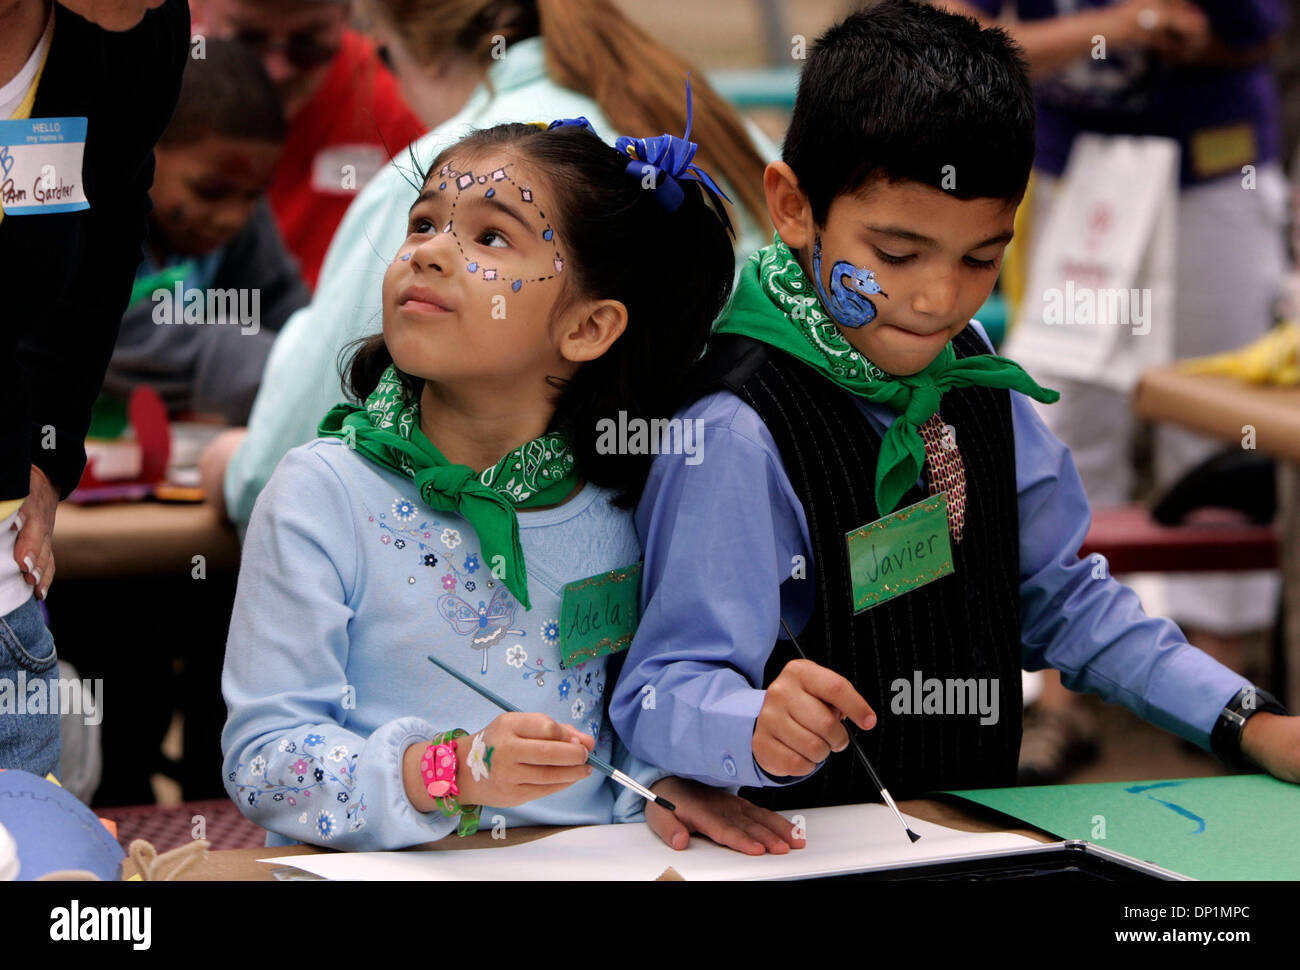 May 06, 2006; San Diego, CA, USA; ADELA, 5, left, and her brother, JAVIER, 6, participate in arts and crafts activities and listen to prospective adoptive parent at the County of San Diego Health and Human Services Agency's 5th Annual 'Spring Fling in the Park' at Admiral Baker Field in Mission Gorge. The event allows children and adoptive parents to meet children in a fun and rela - Stock Image